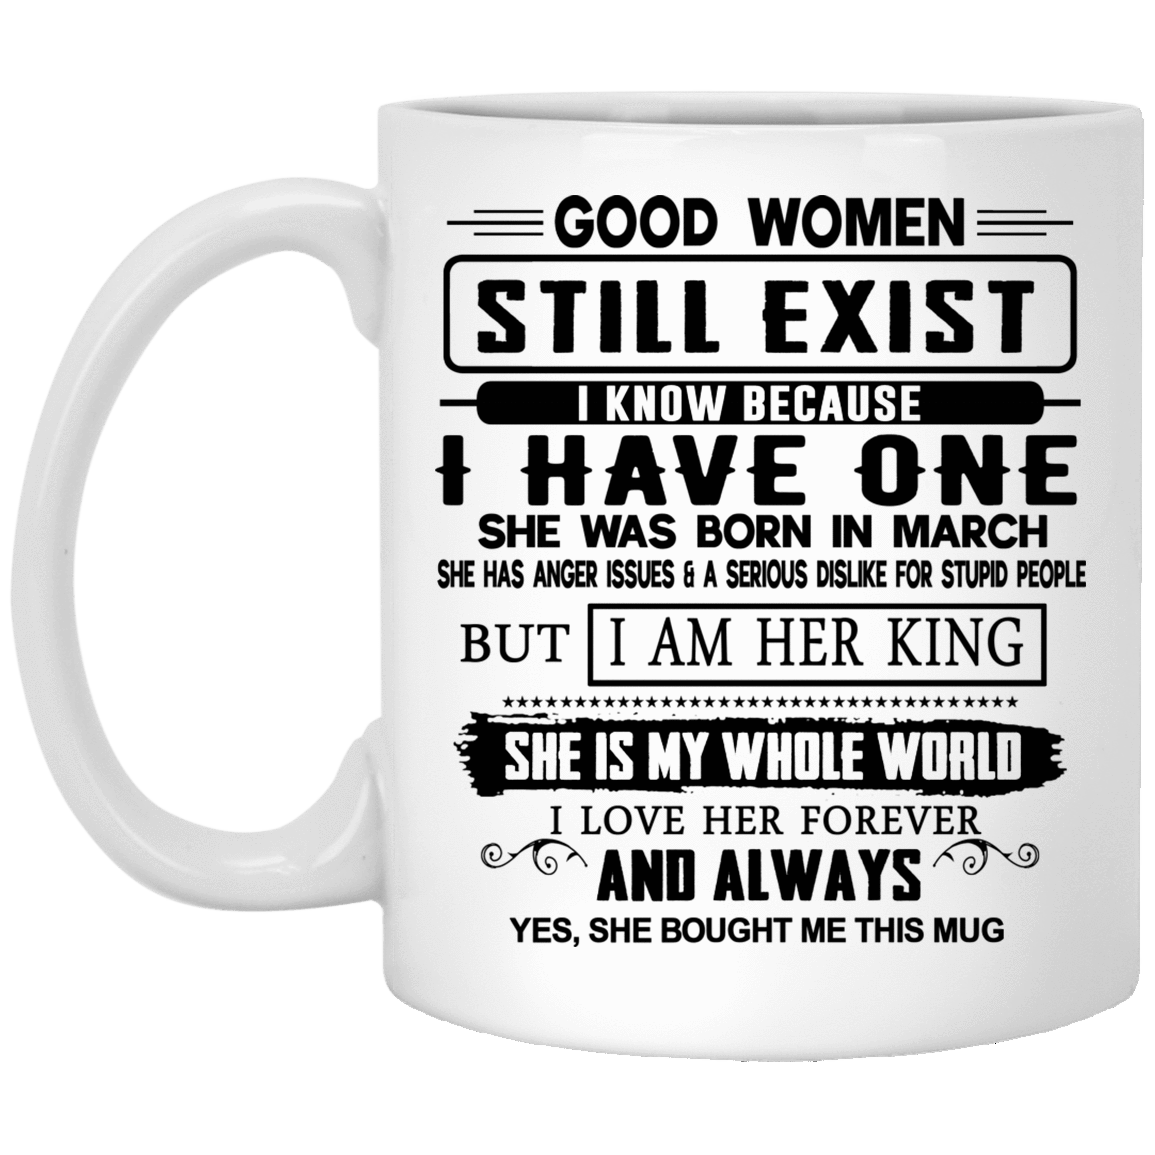 Good Women Still Exist I Have One He Was Born In March Mug 1005-9786-76399347-47417 - Tee Ript